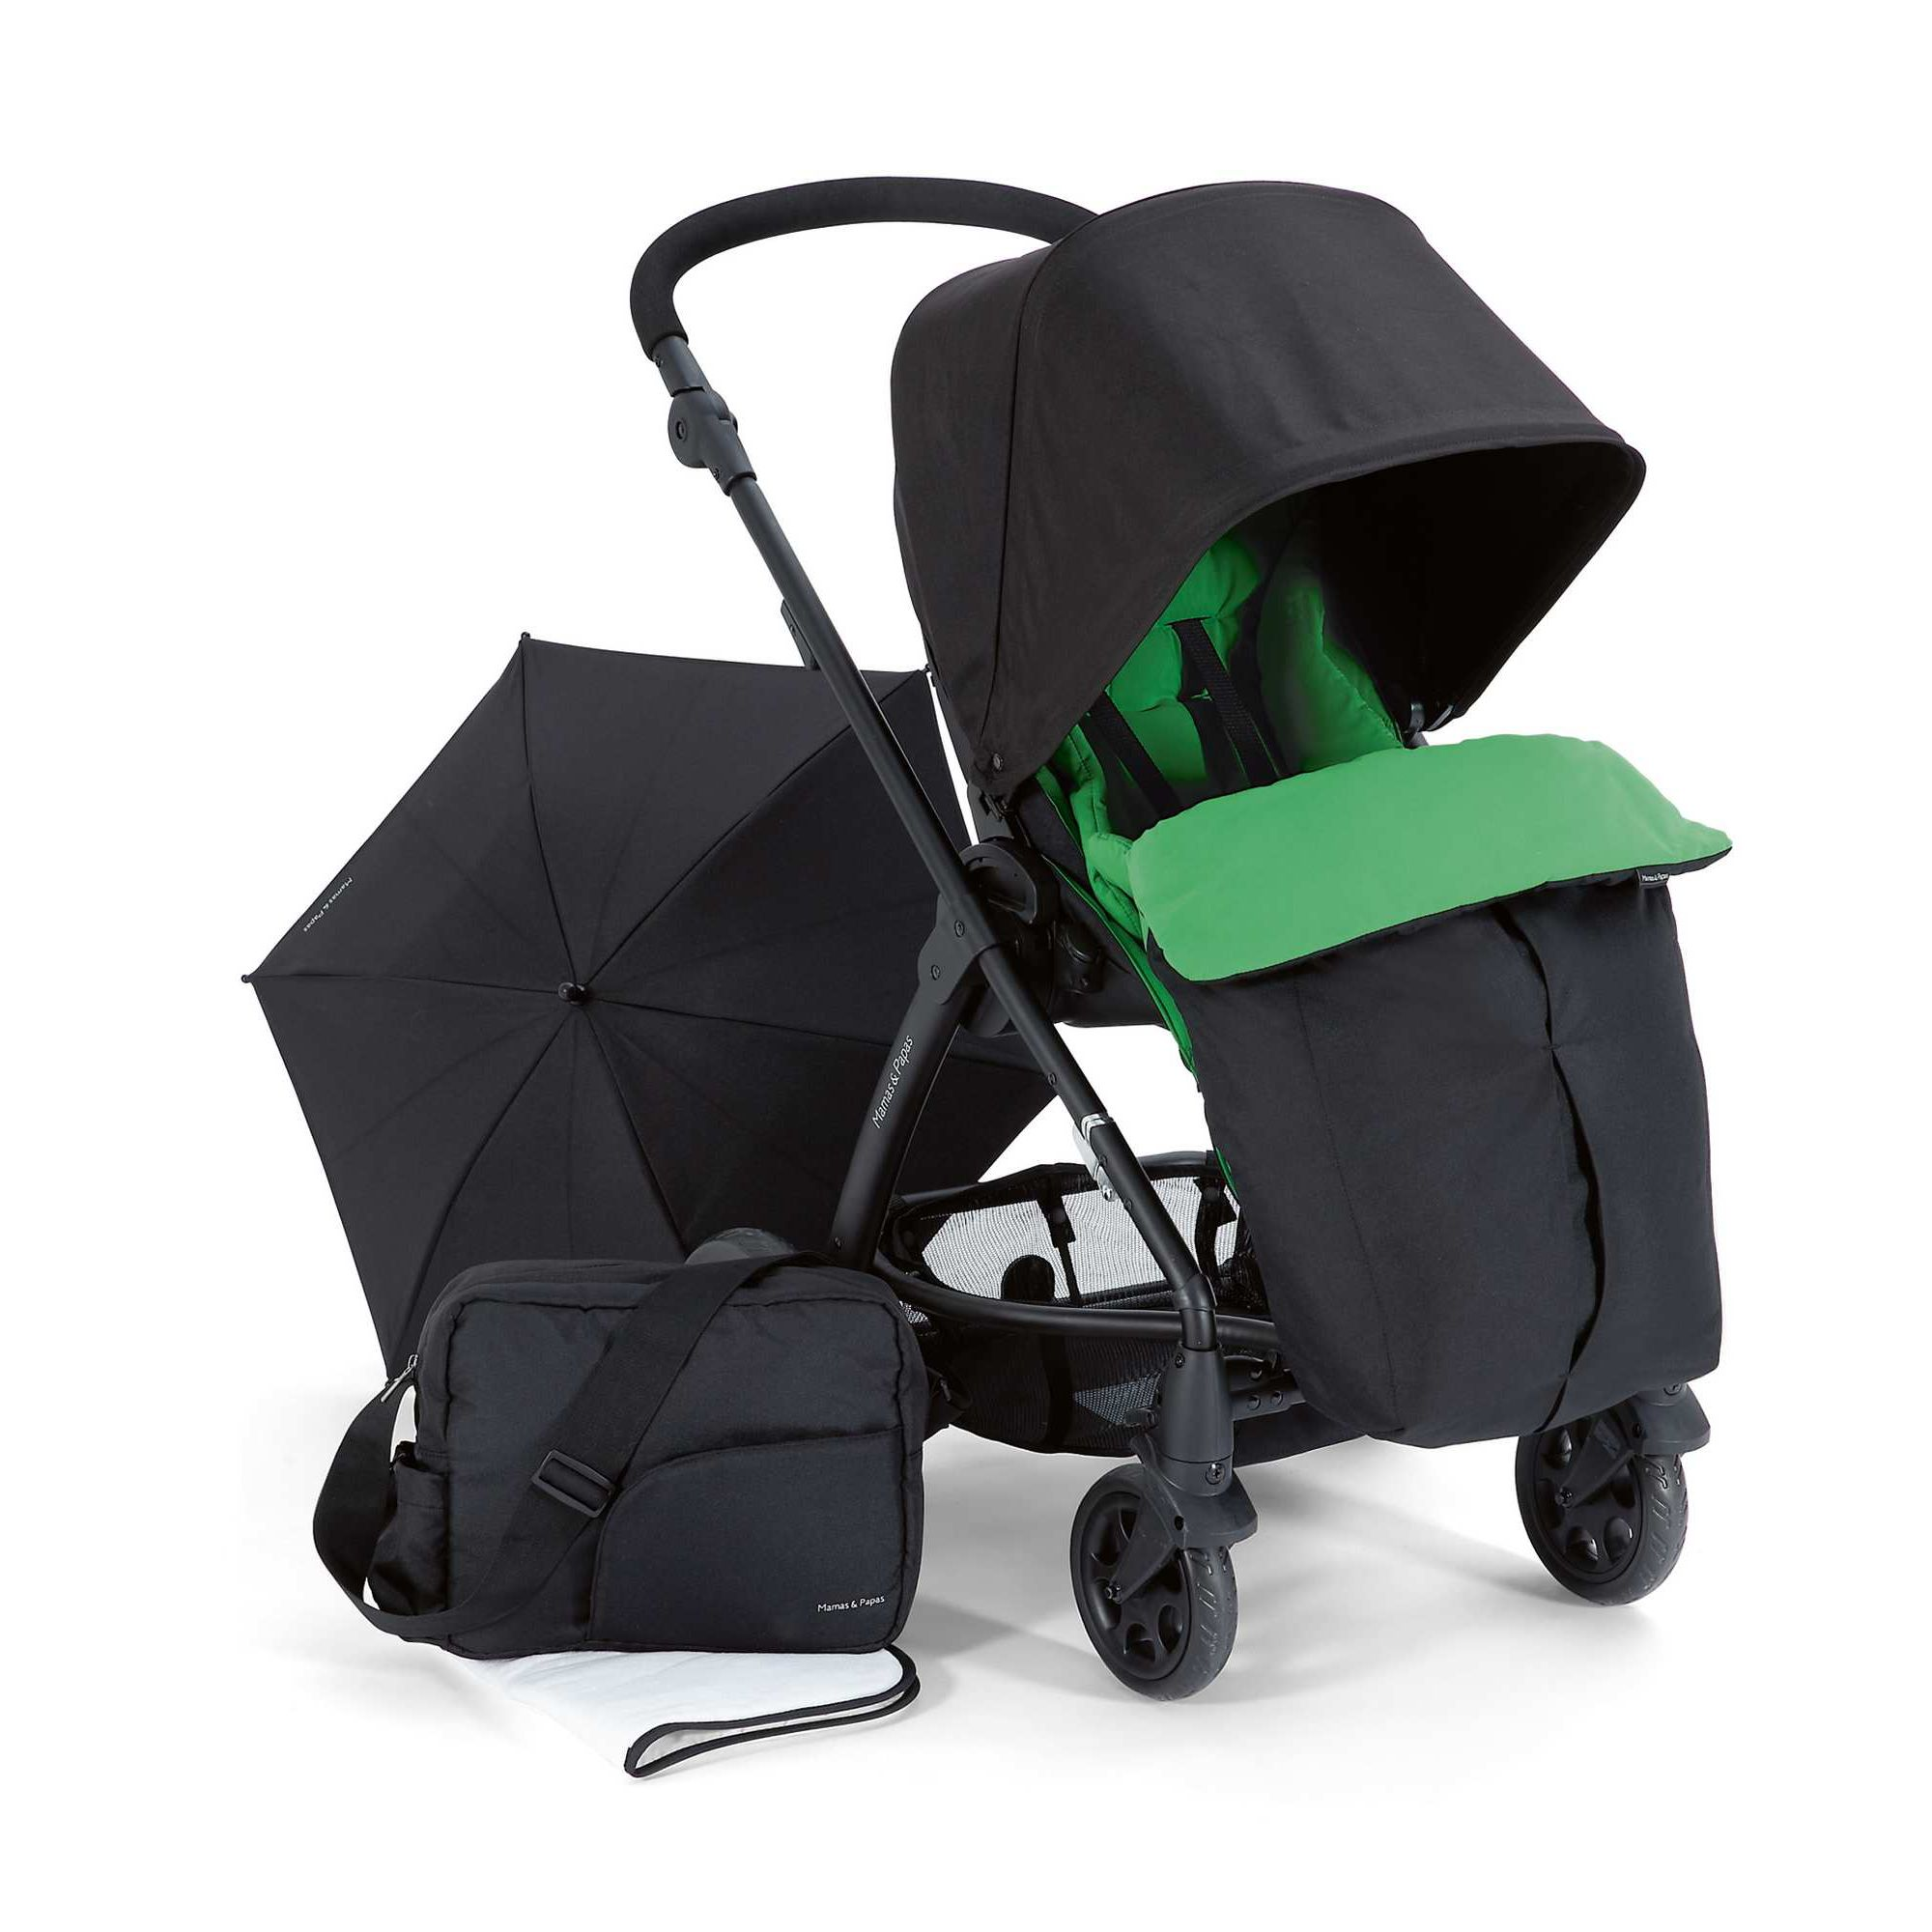 Mamas & Papas - Glide Package - Black/Grass at Tesco Direct